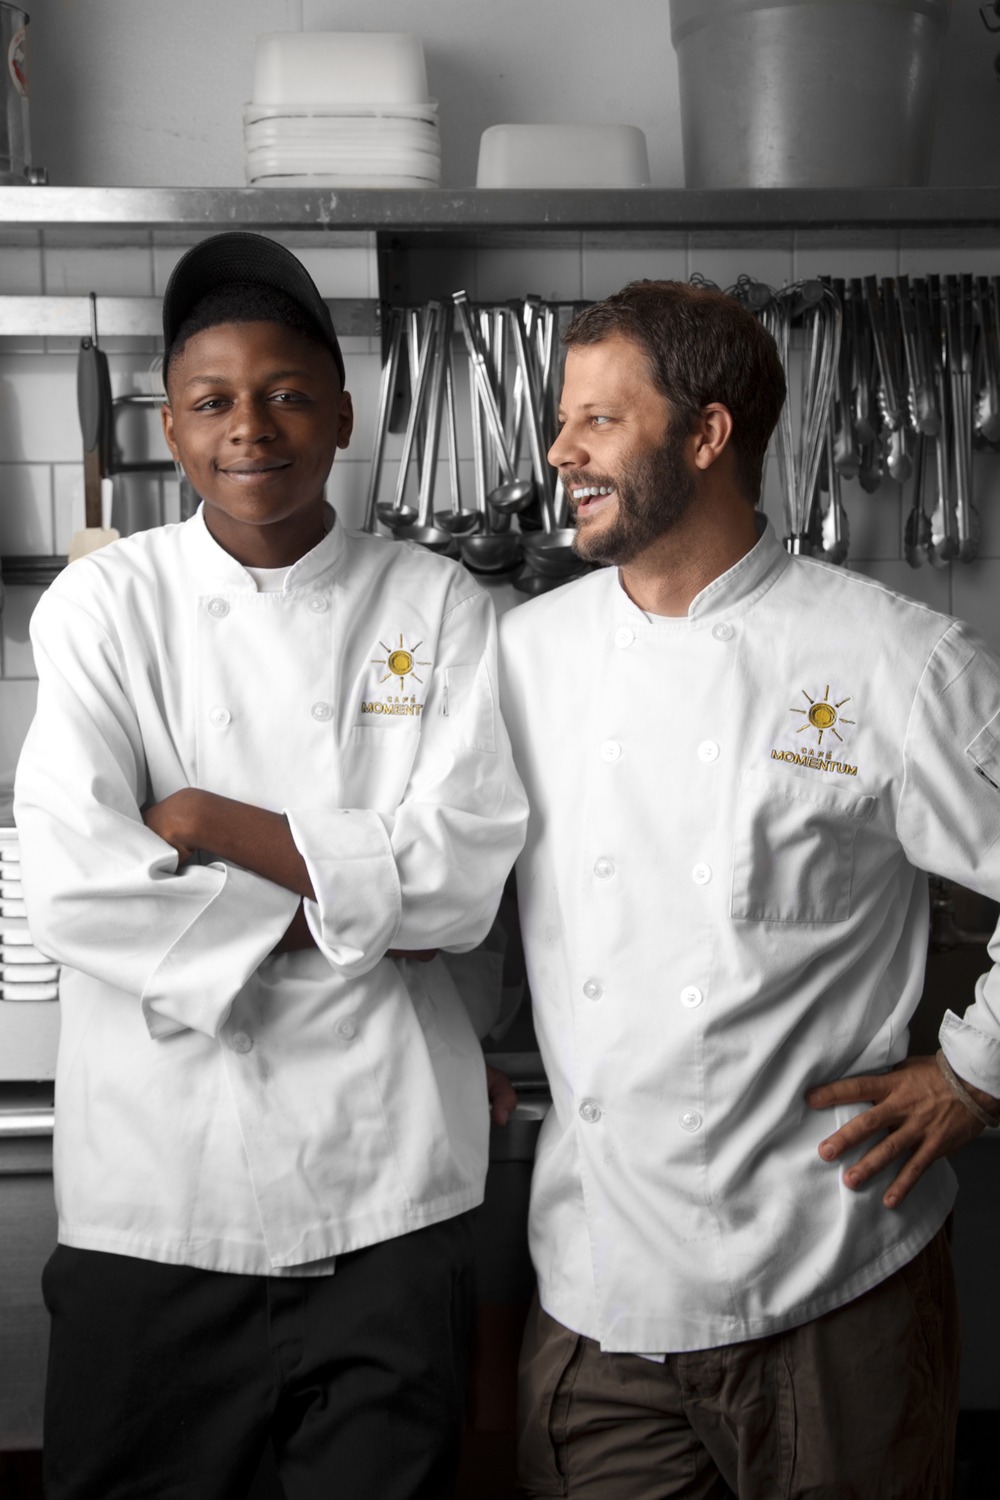 Chef Chad Houser and Malik Runnels, Credit Stanton Stephens